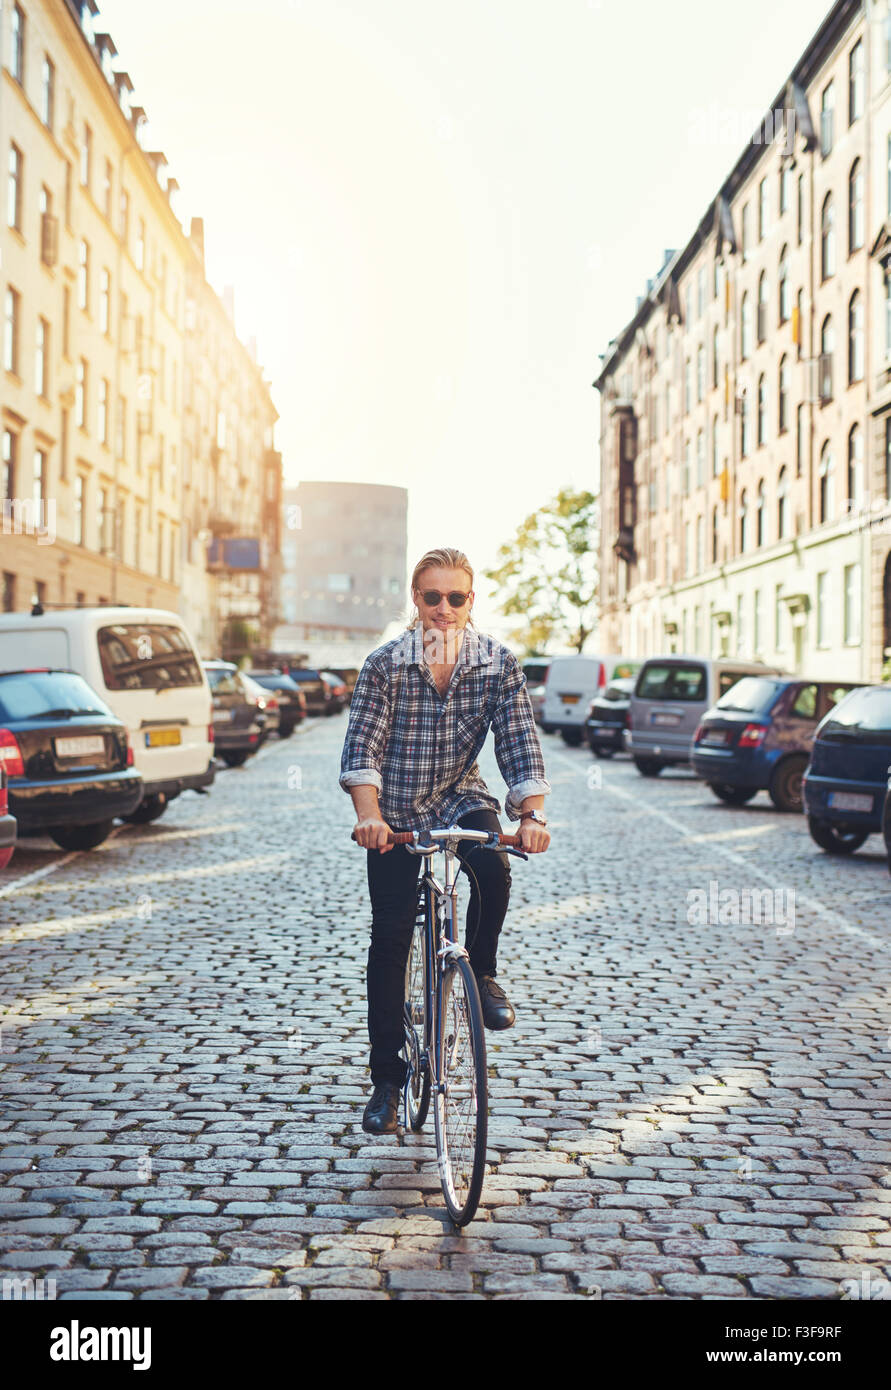 Man riding his bike through the city, Smiling at camera looking cool - Stock Image